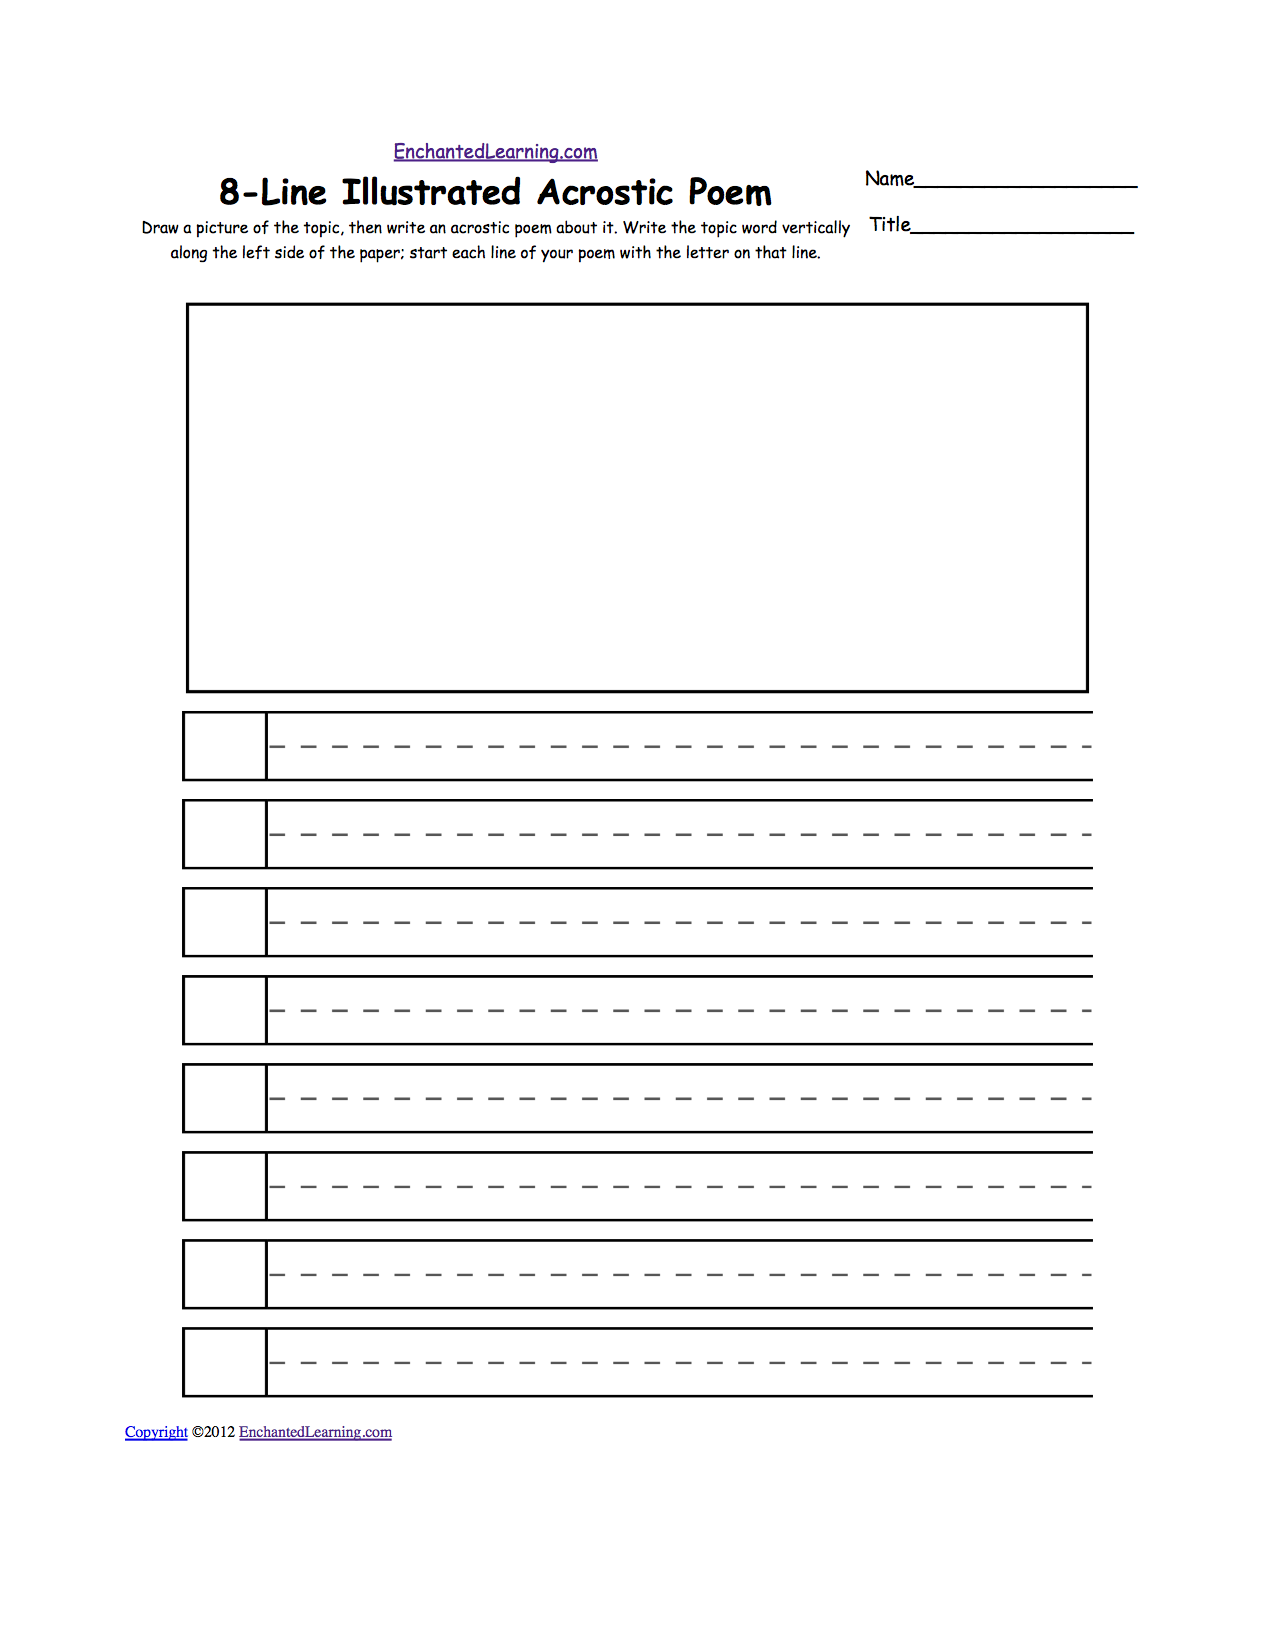 Blank Illustrated Acrostic Poem Worksheets Handwriting Lines – Poem Worksheets